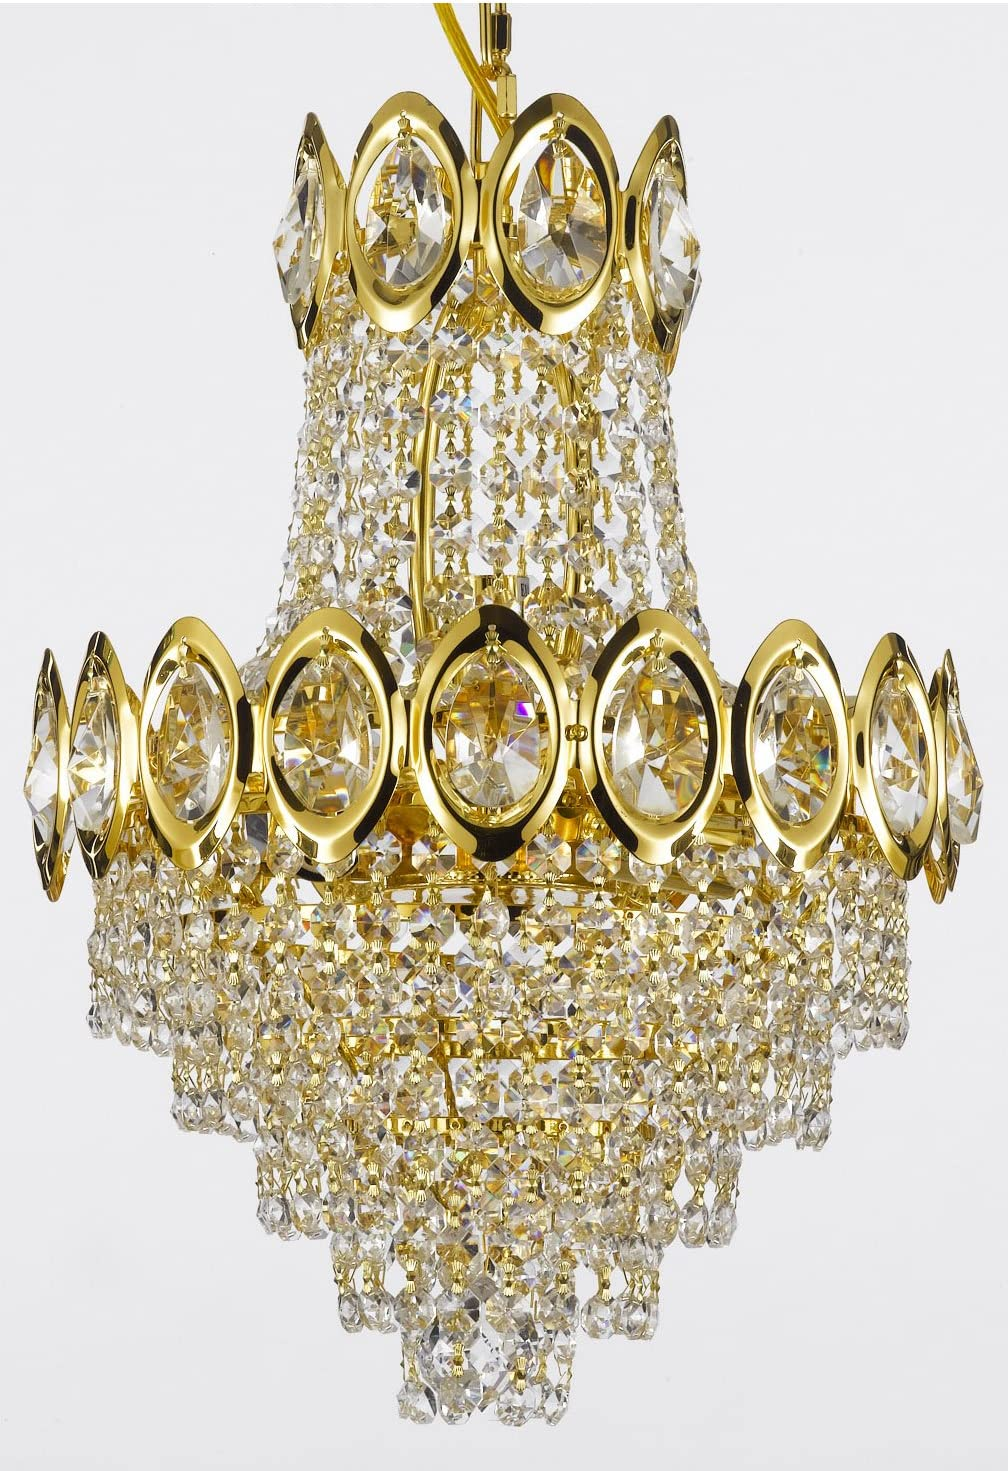 French Empire Crystal Chandelier Chandeliers Lighting, H17 X Wd12, 4 Lights,